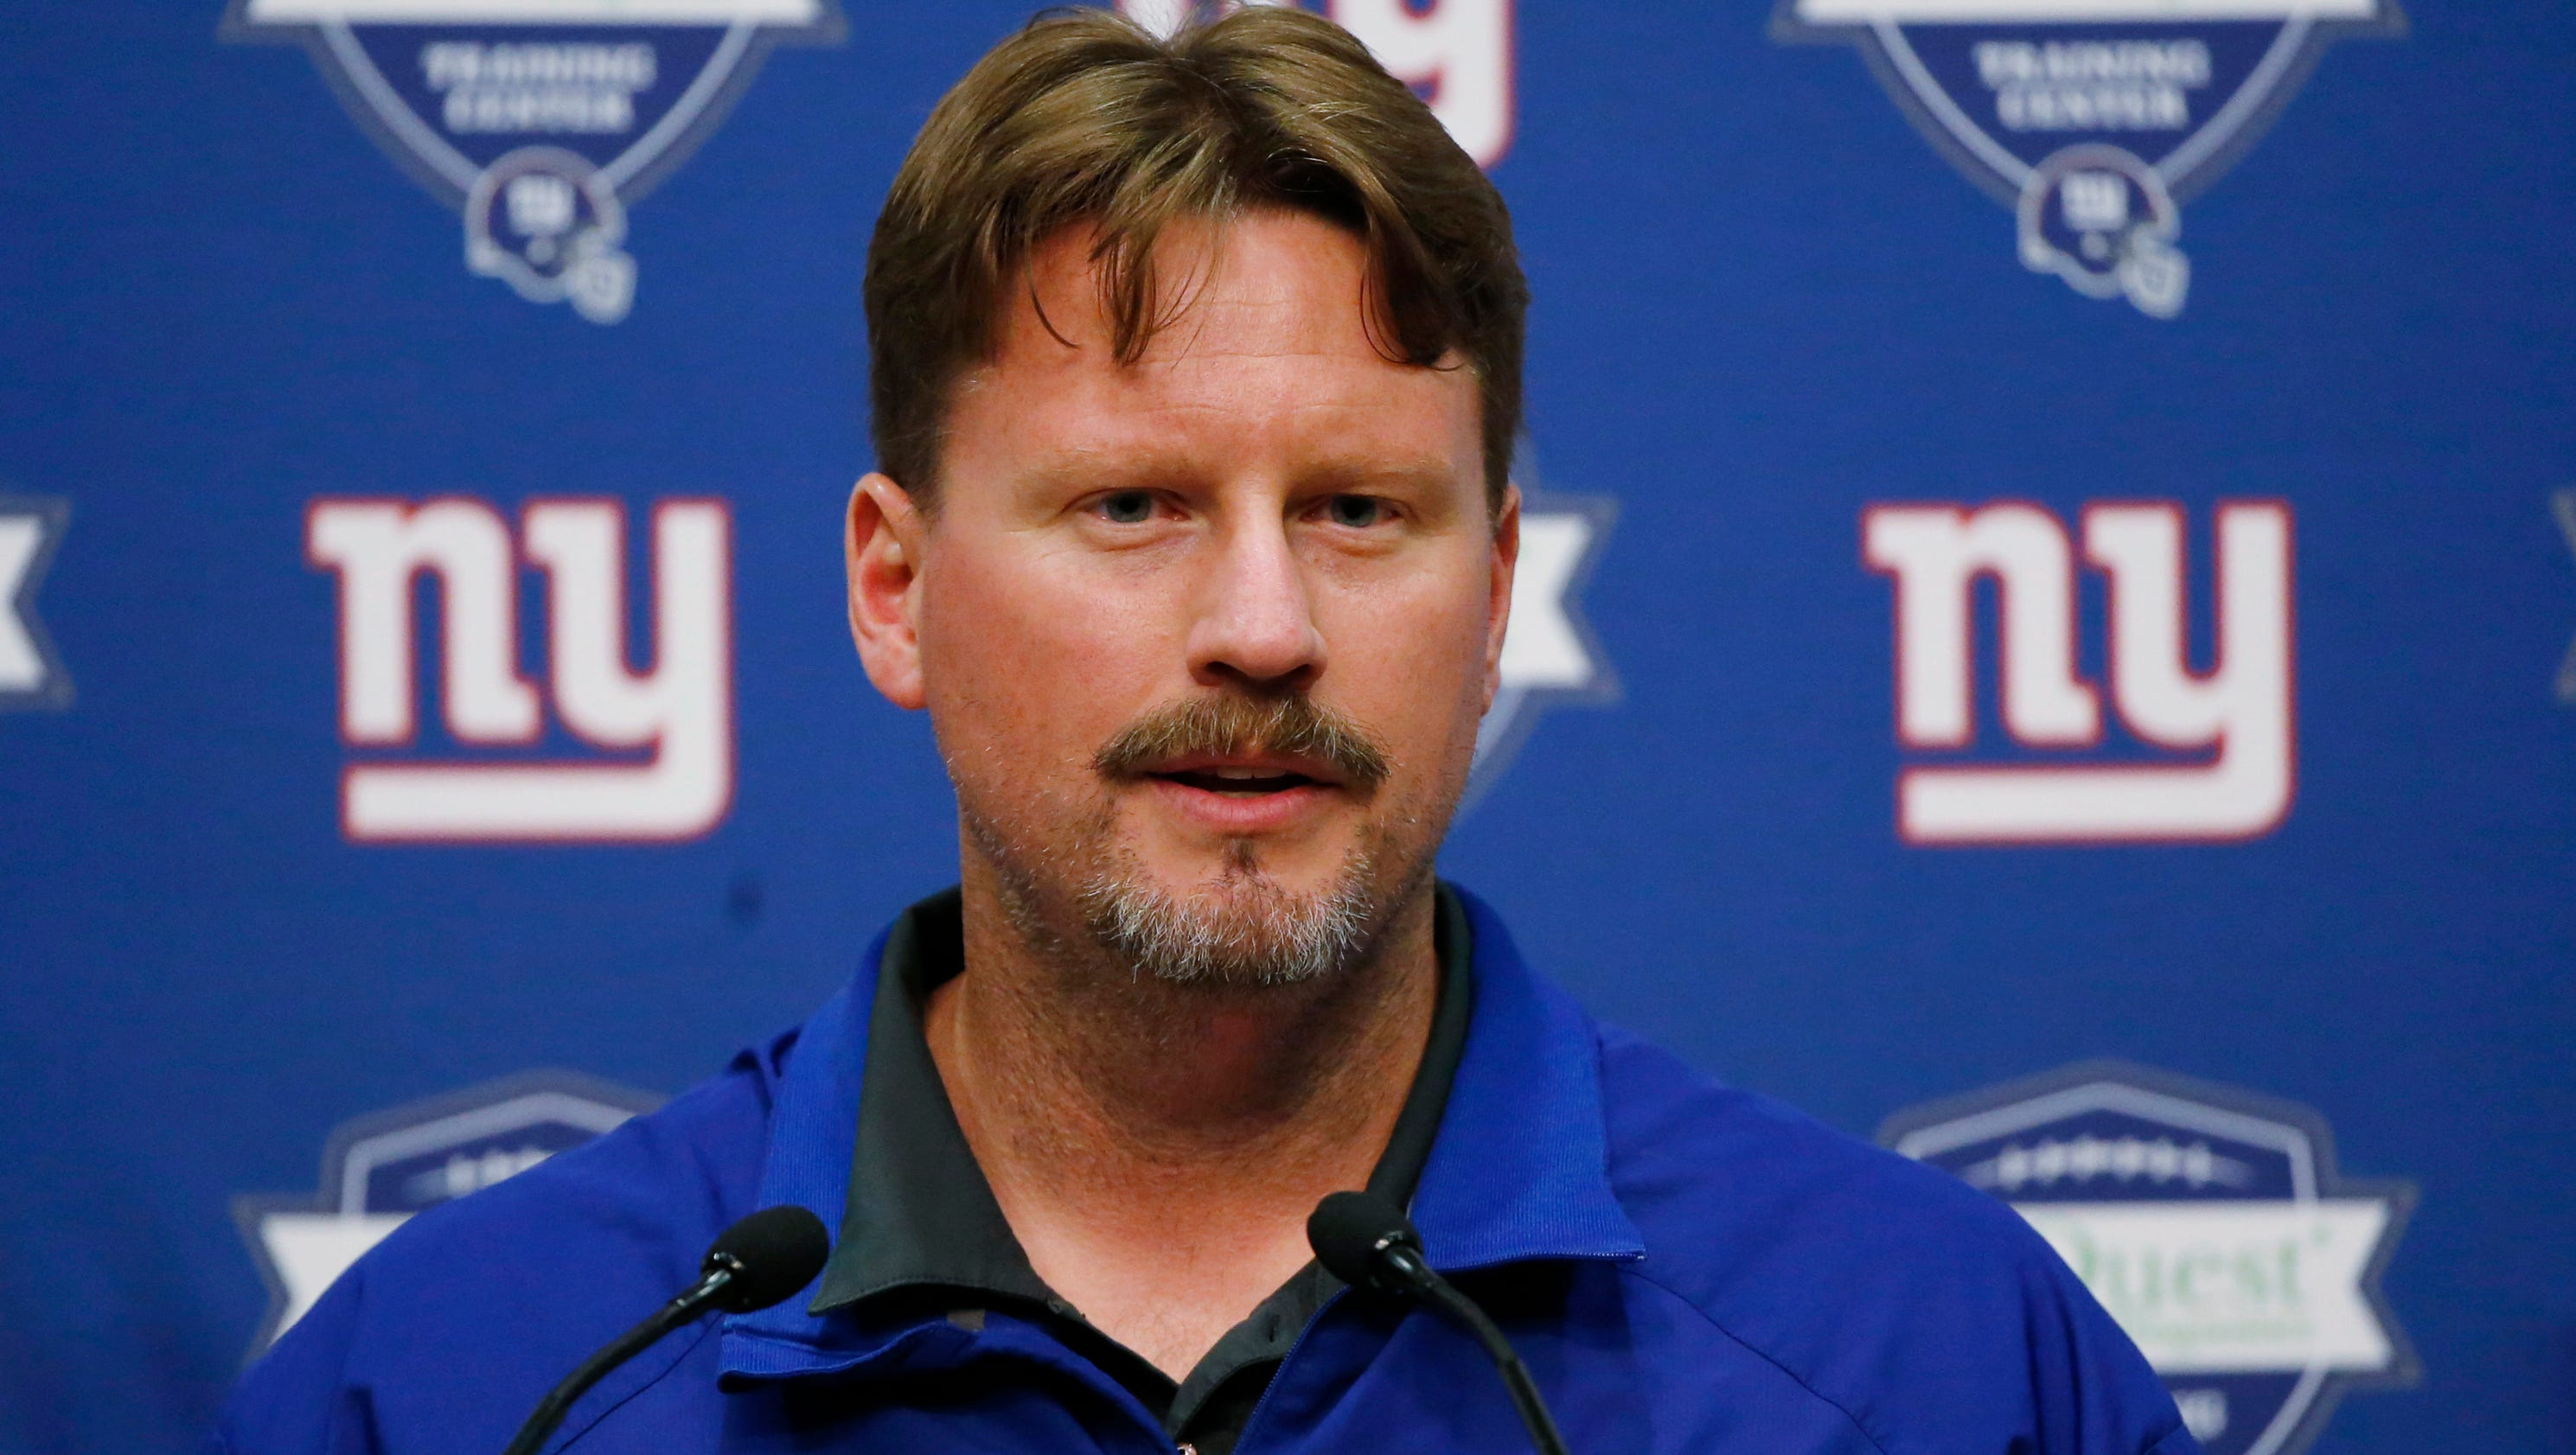 With Ben Mcadoo Giants Miss Chance For Meaningful Change